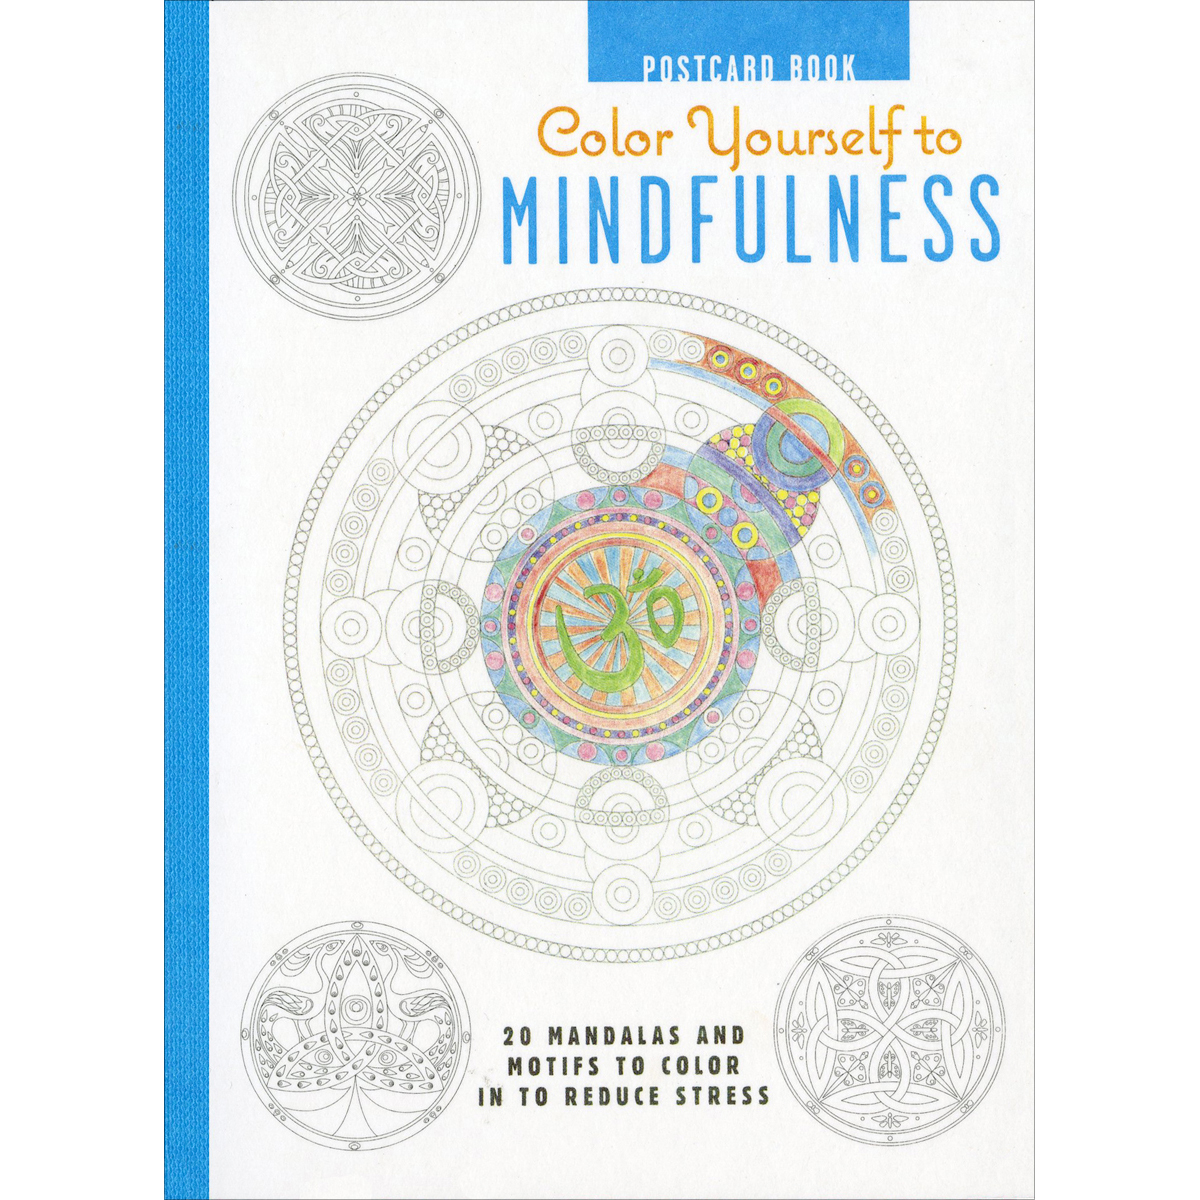 Cico Books-Color Yourself To Mindfulness Postcards